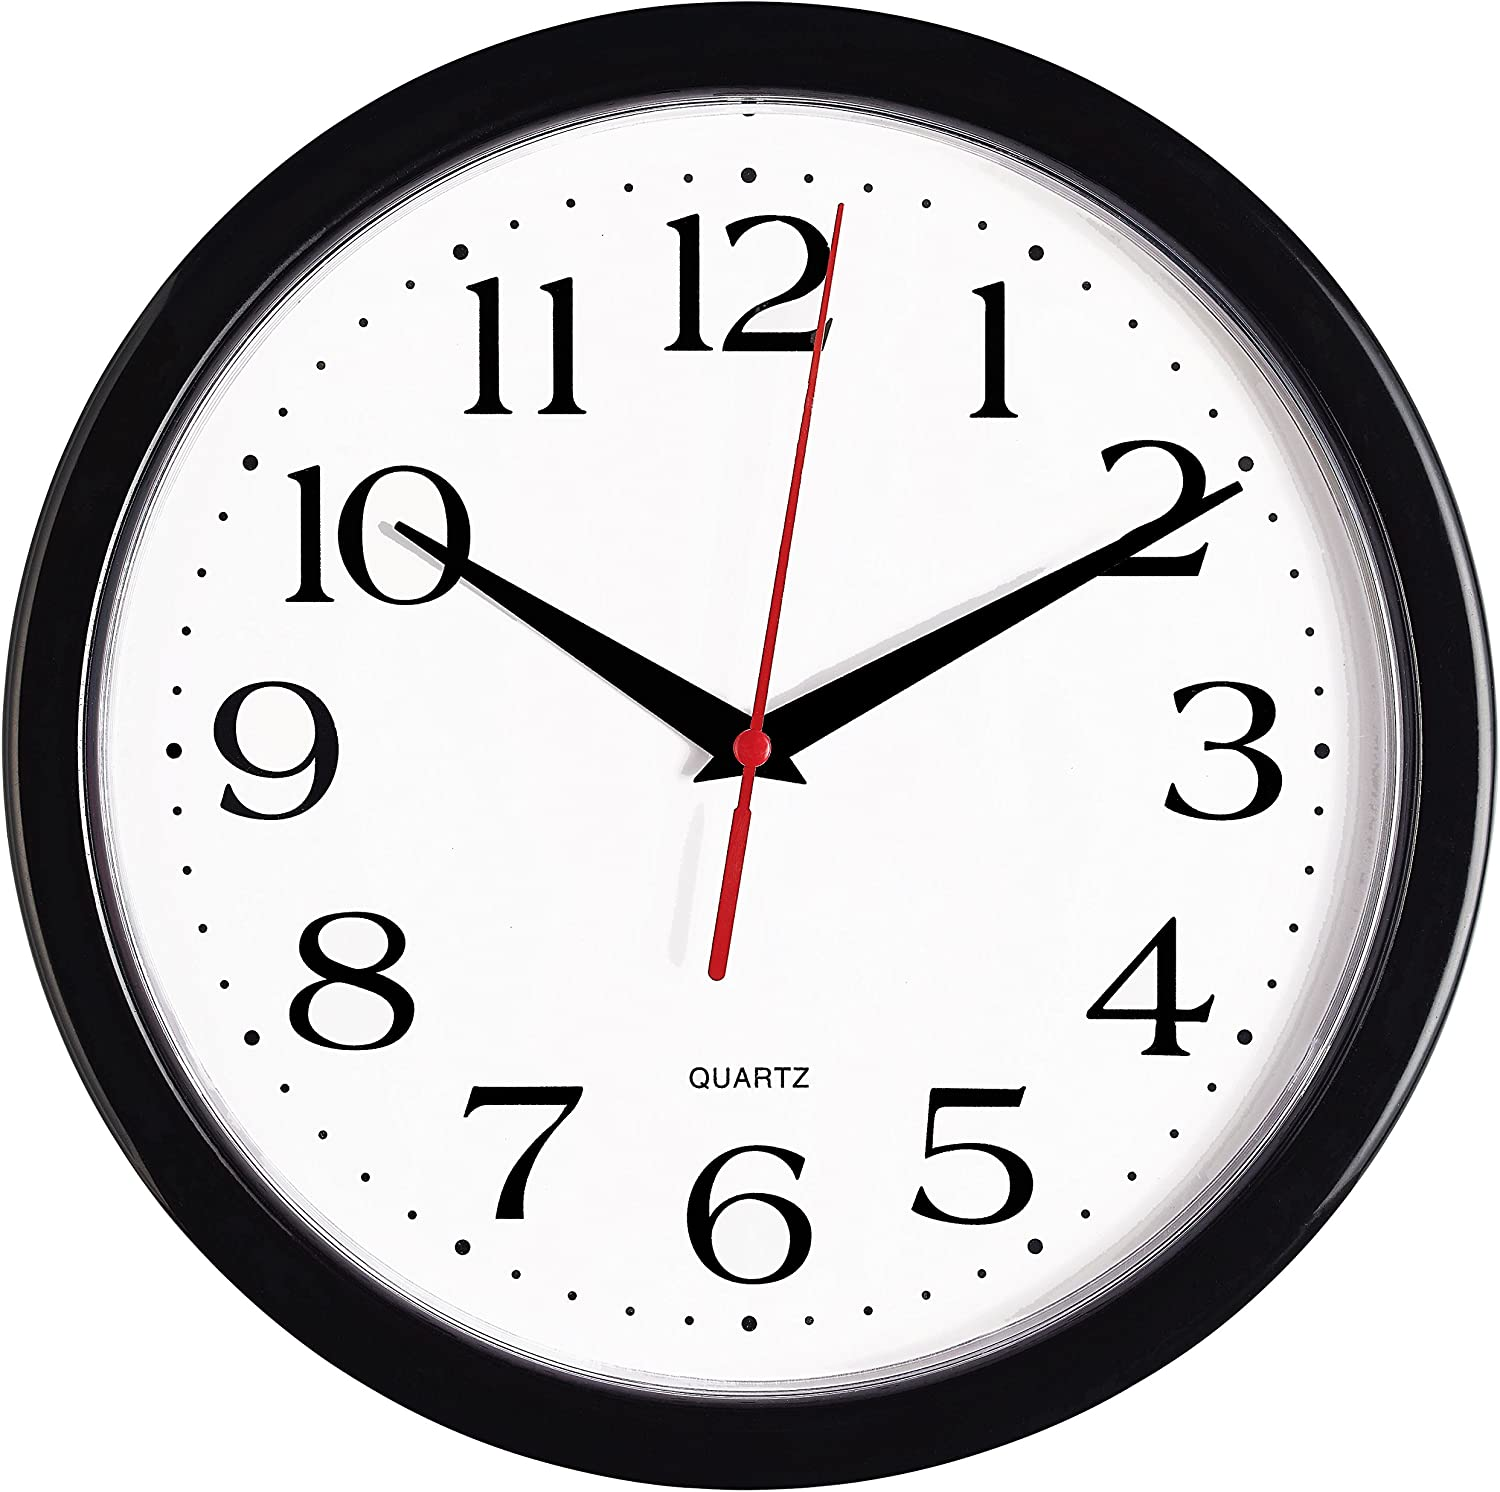 Bernhard Products Black Wall Clock Silent Non Ticking - 10 Inch Quality Quartz Battery Operated Round Easy to Read Home/Office/Classroom/School Clock: Home & Kitchen